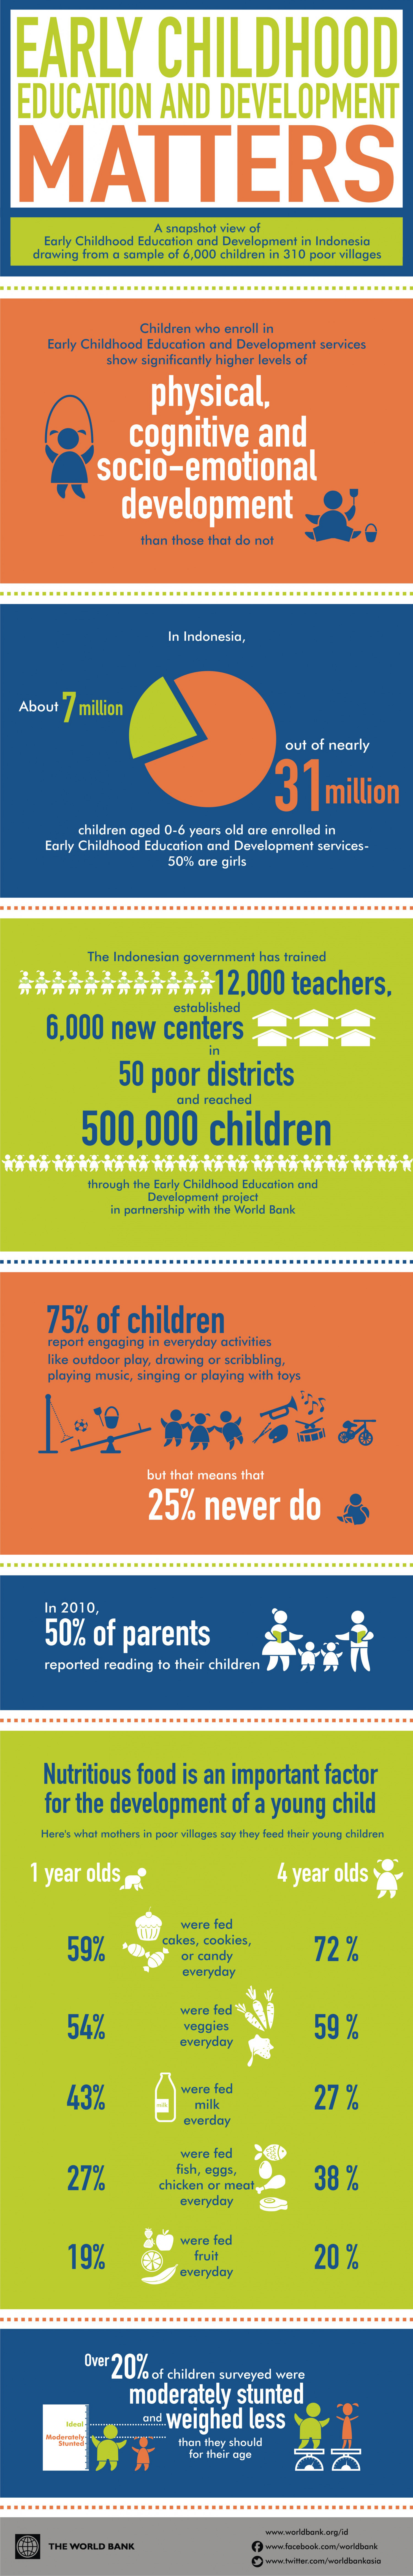 Indonesia: Early Childhood Education and Development Matters Infographic